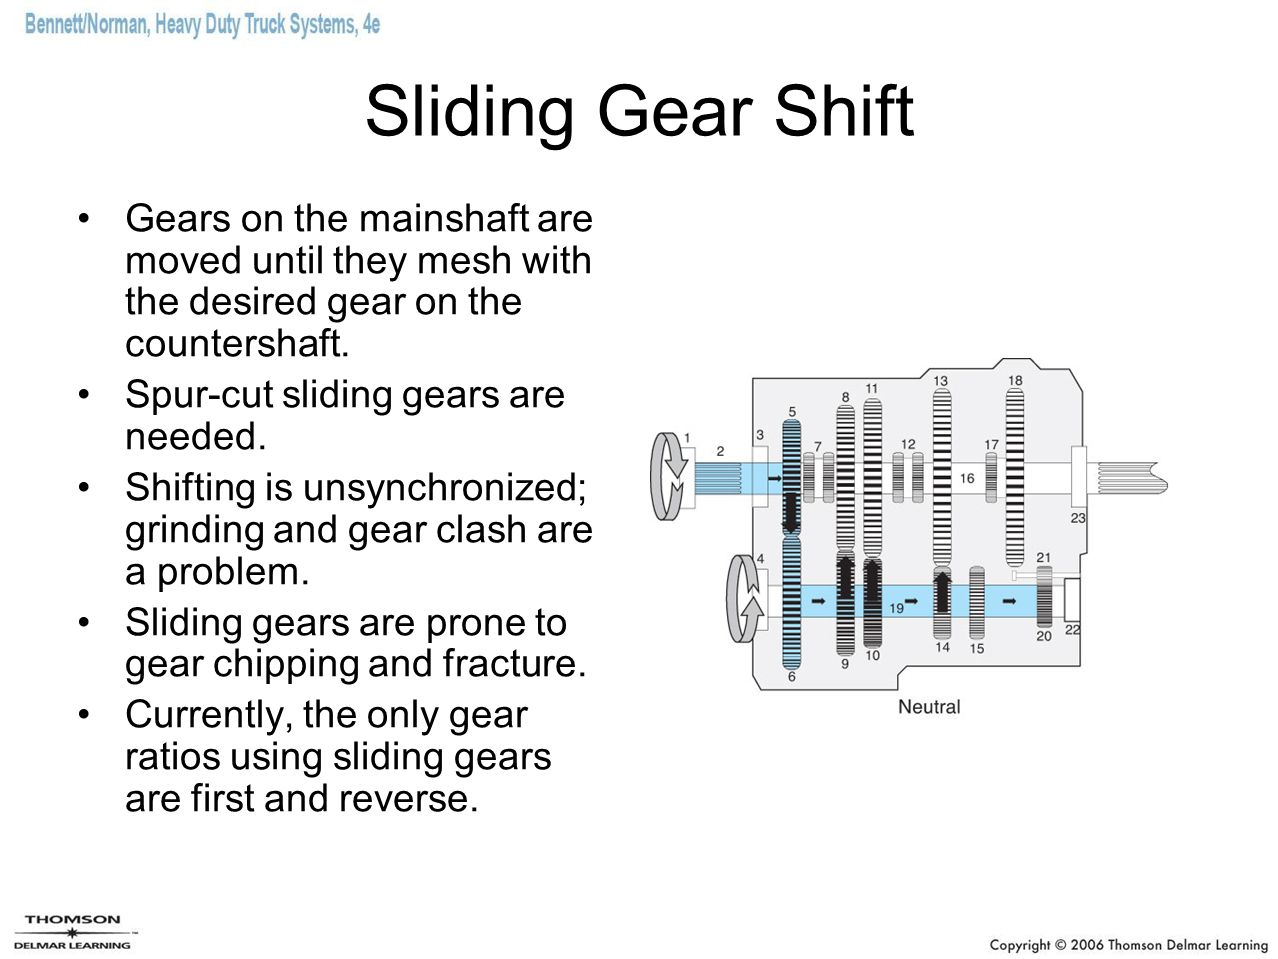 Sliding Gear Shift Gears on the mainshaft are moved until they mesh with the desired gear on the countershaft.